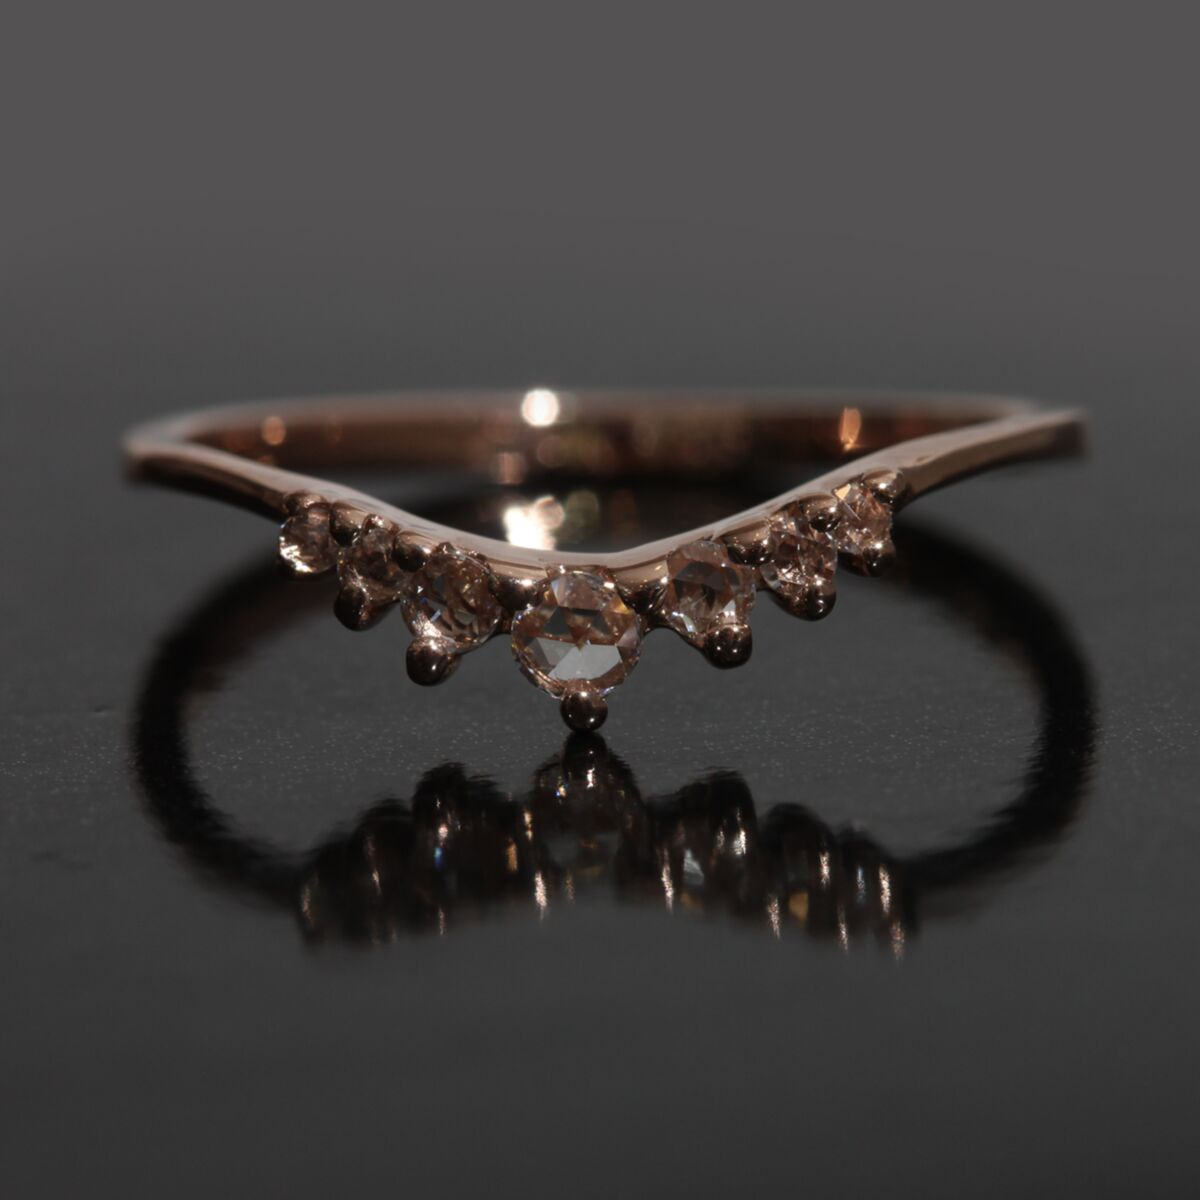 Beacen Ring, Diamond image